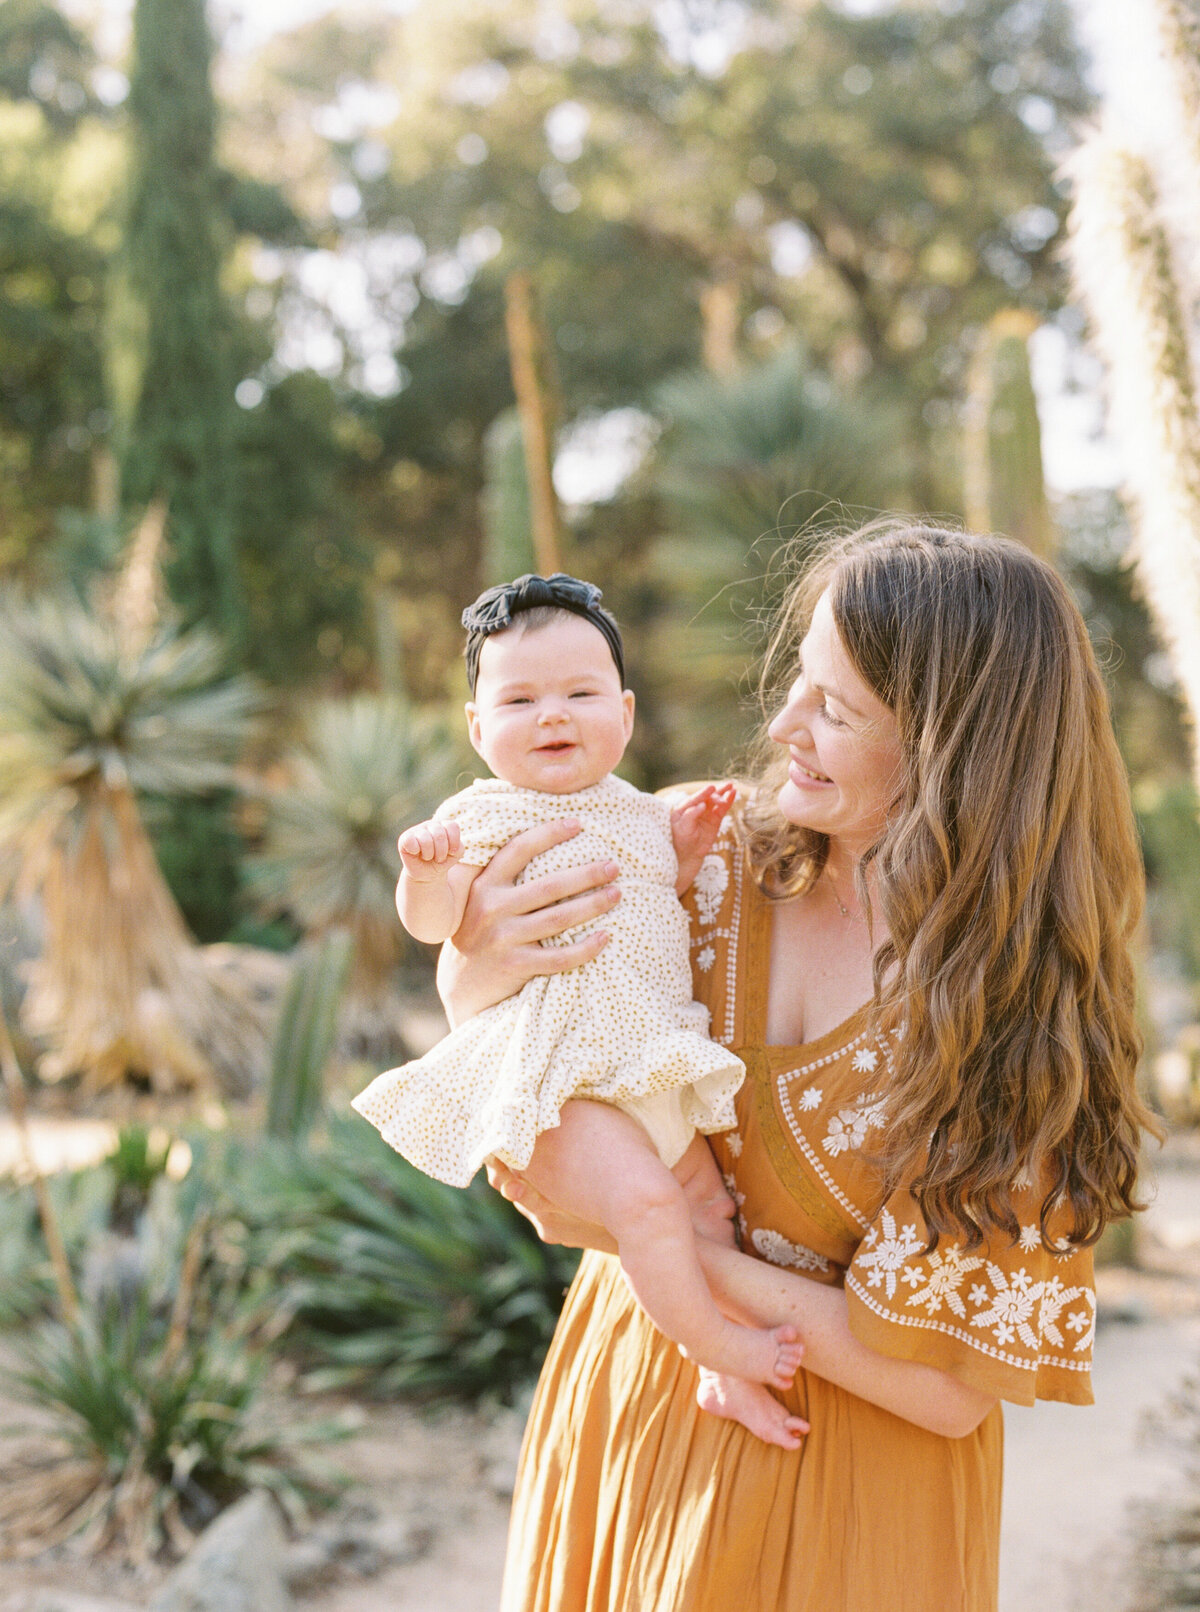 Olivia Marshall Photography- Cactus Desert Garden Family Photos-7